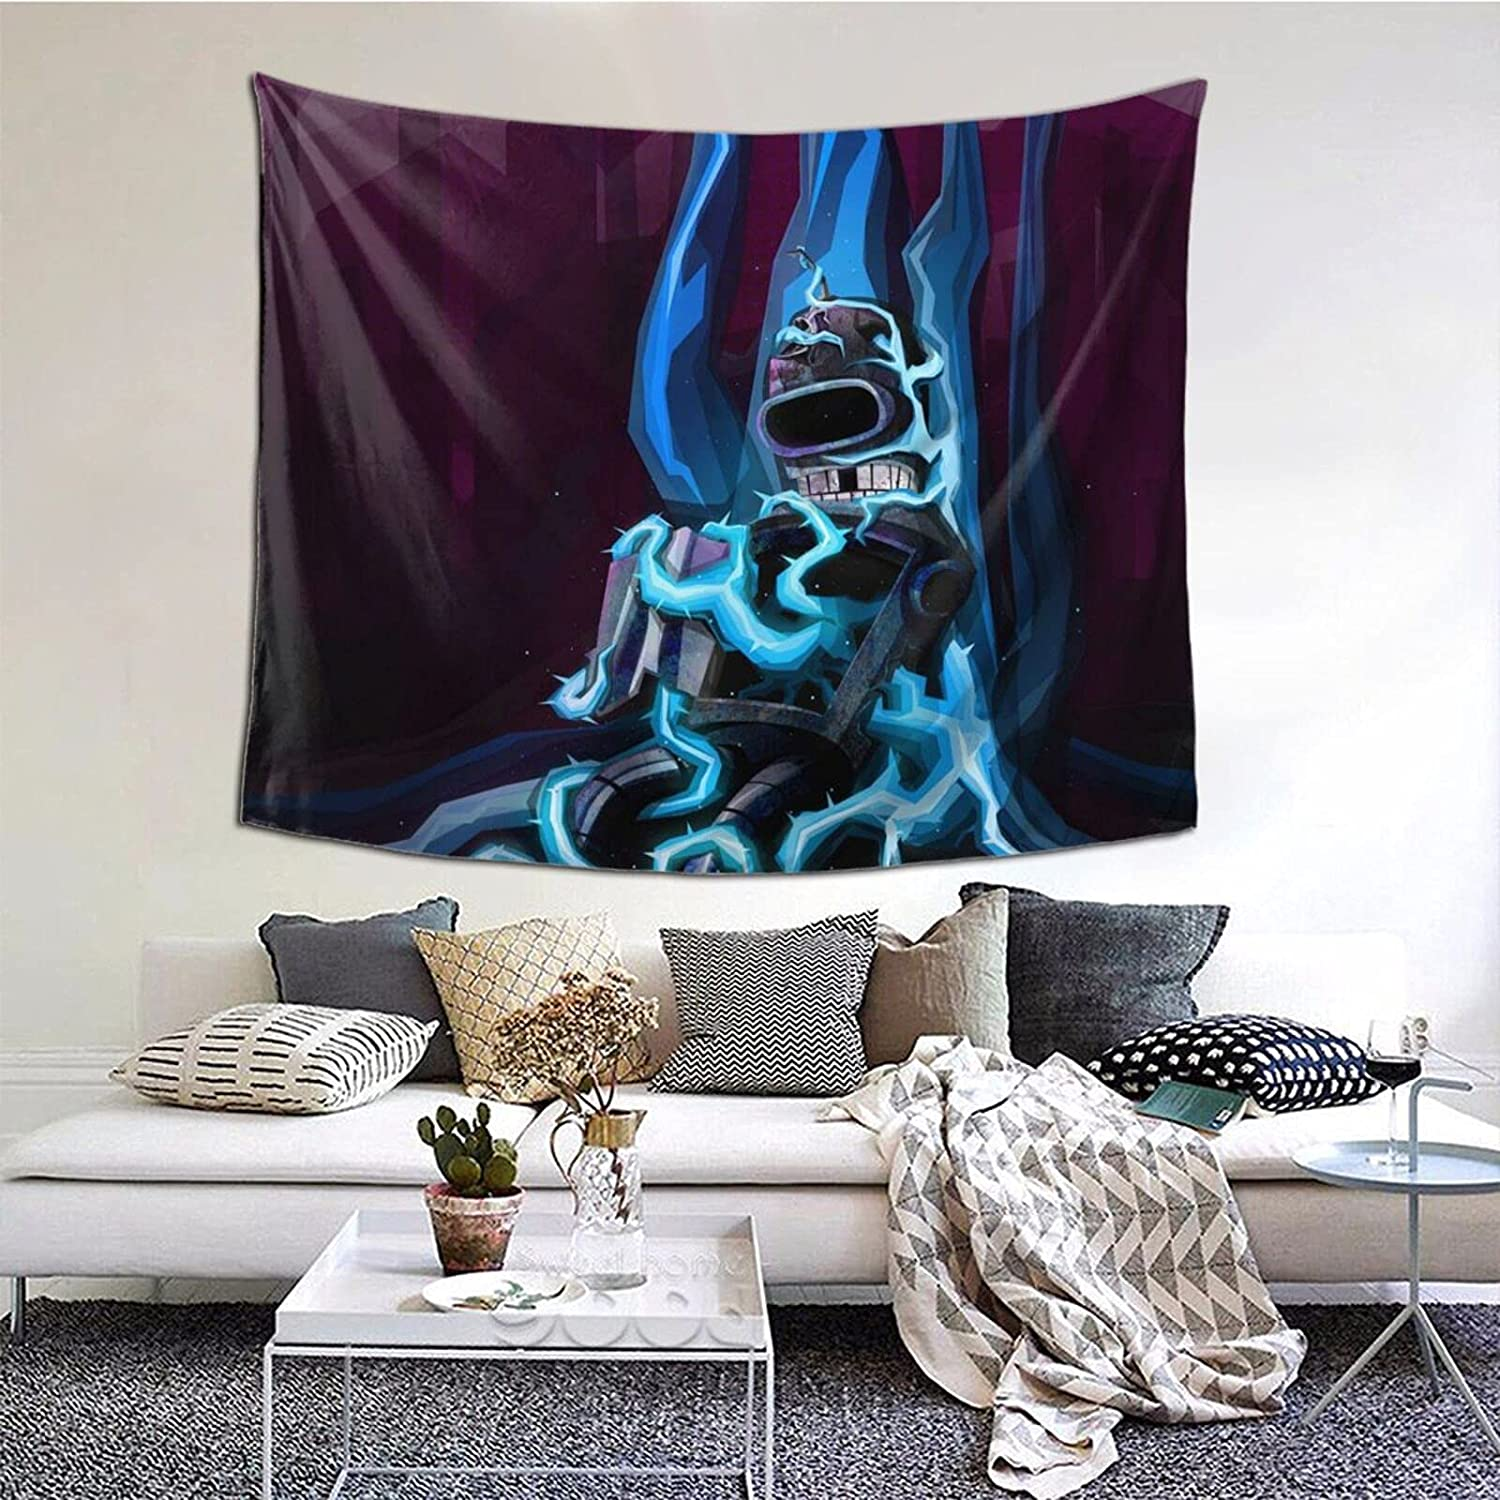 Futurama Fallen Bender Tapestry Wall Hanging Home Decor Art For College Dorm Bedroom Living Room Home Decor 60x50 Inches